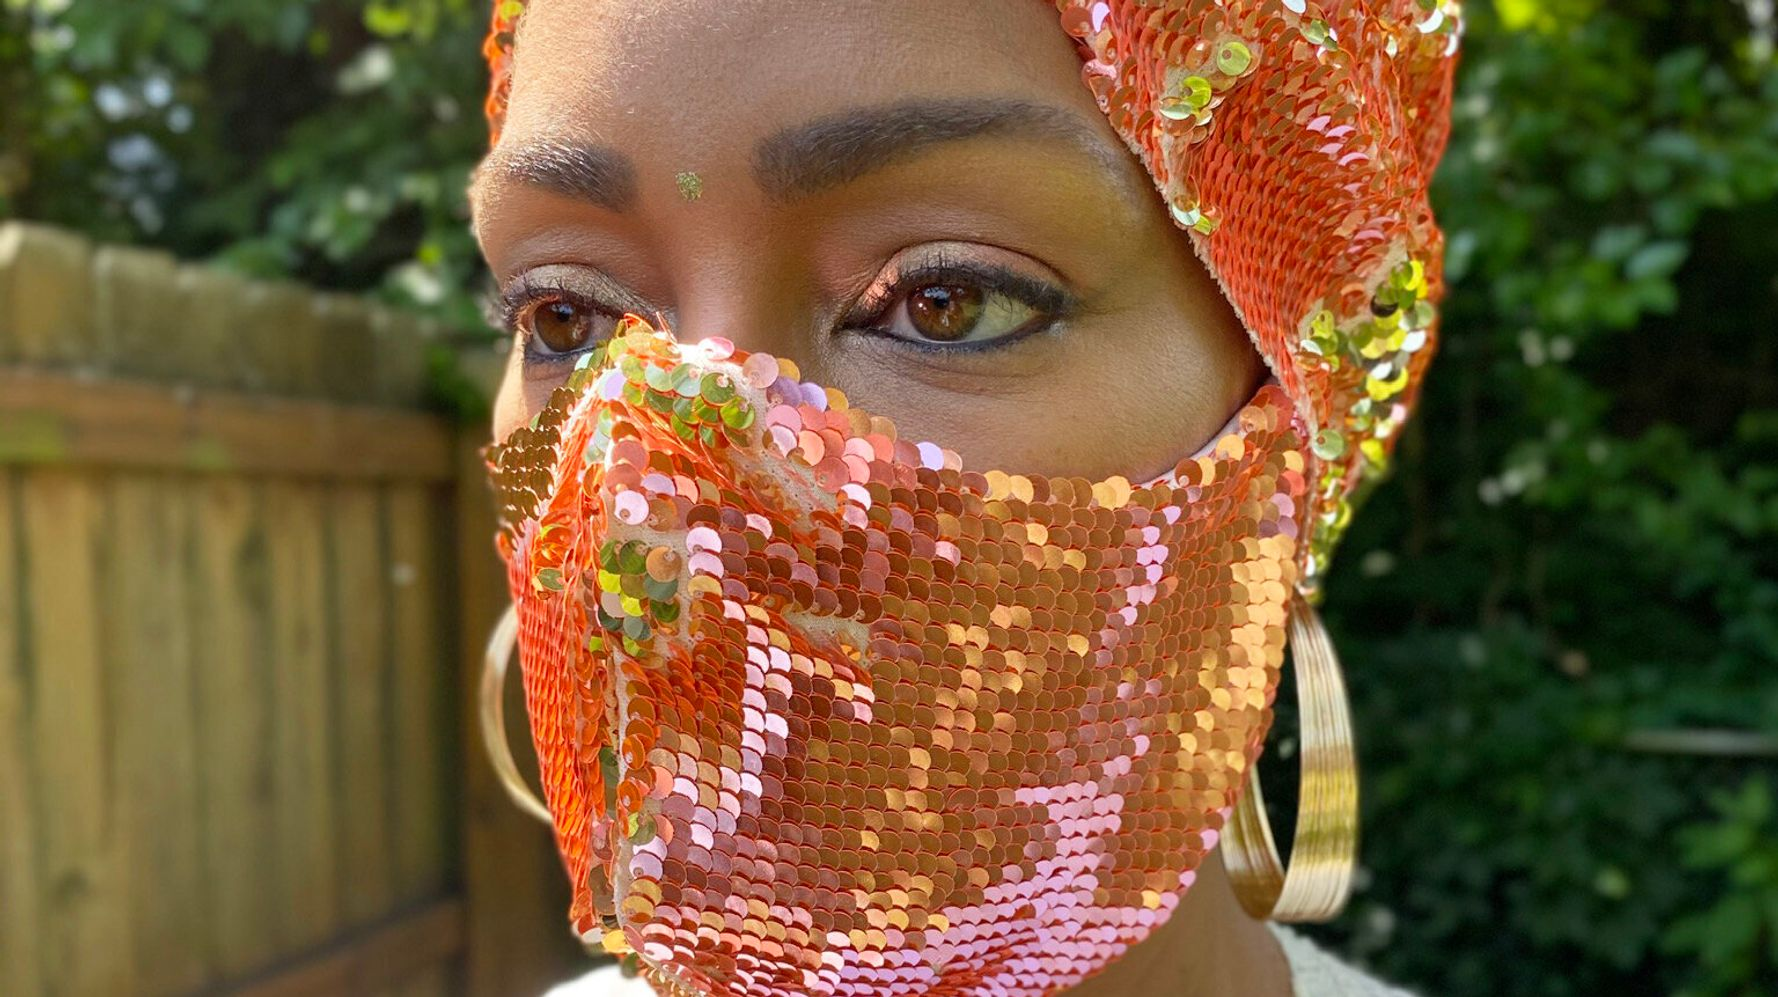 More Coronavirus Face Masks From Black-Owned Businesses 1